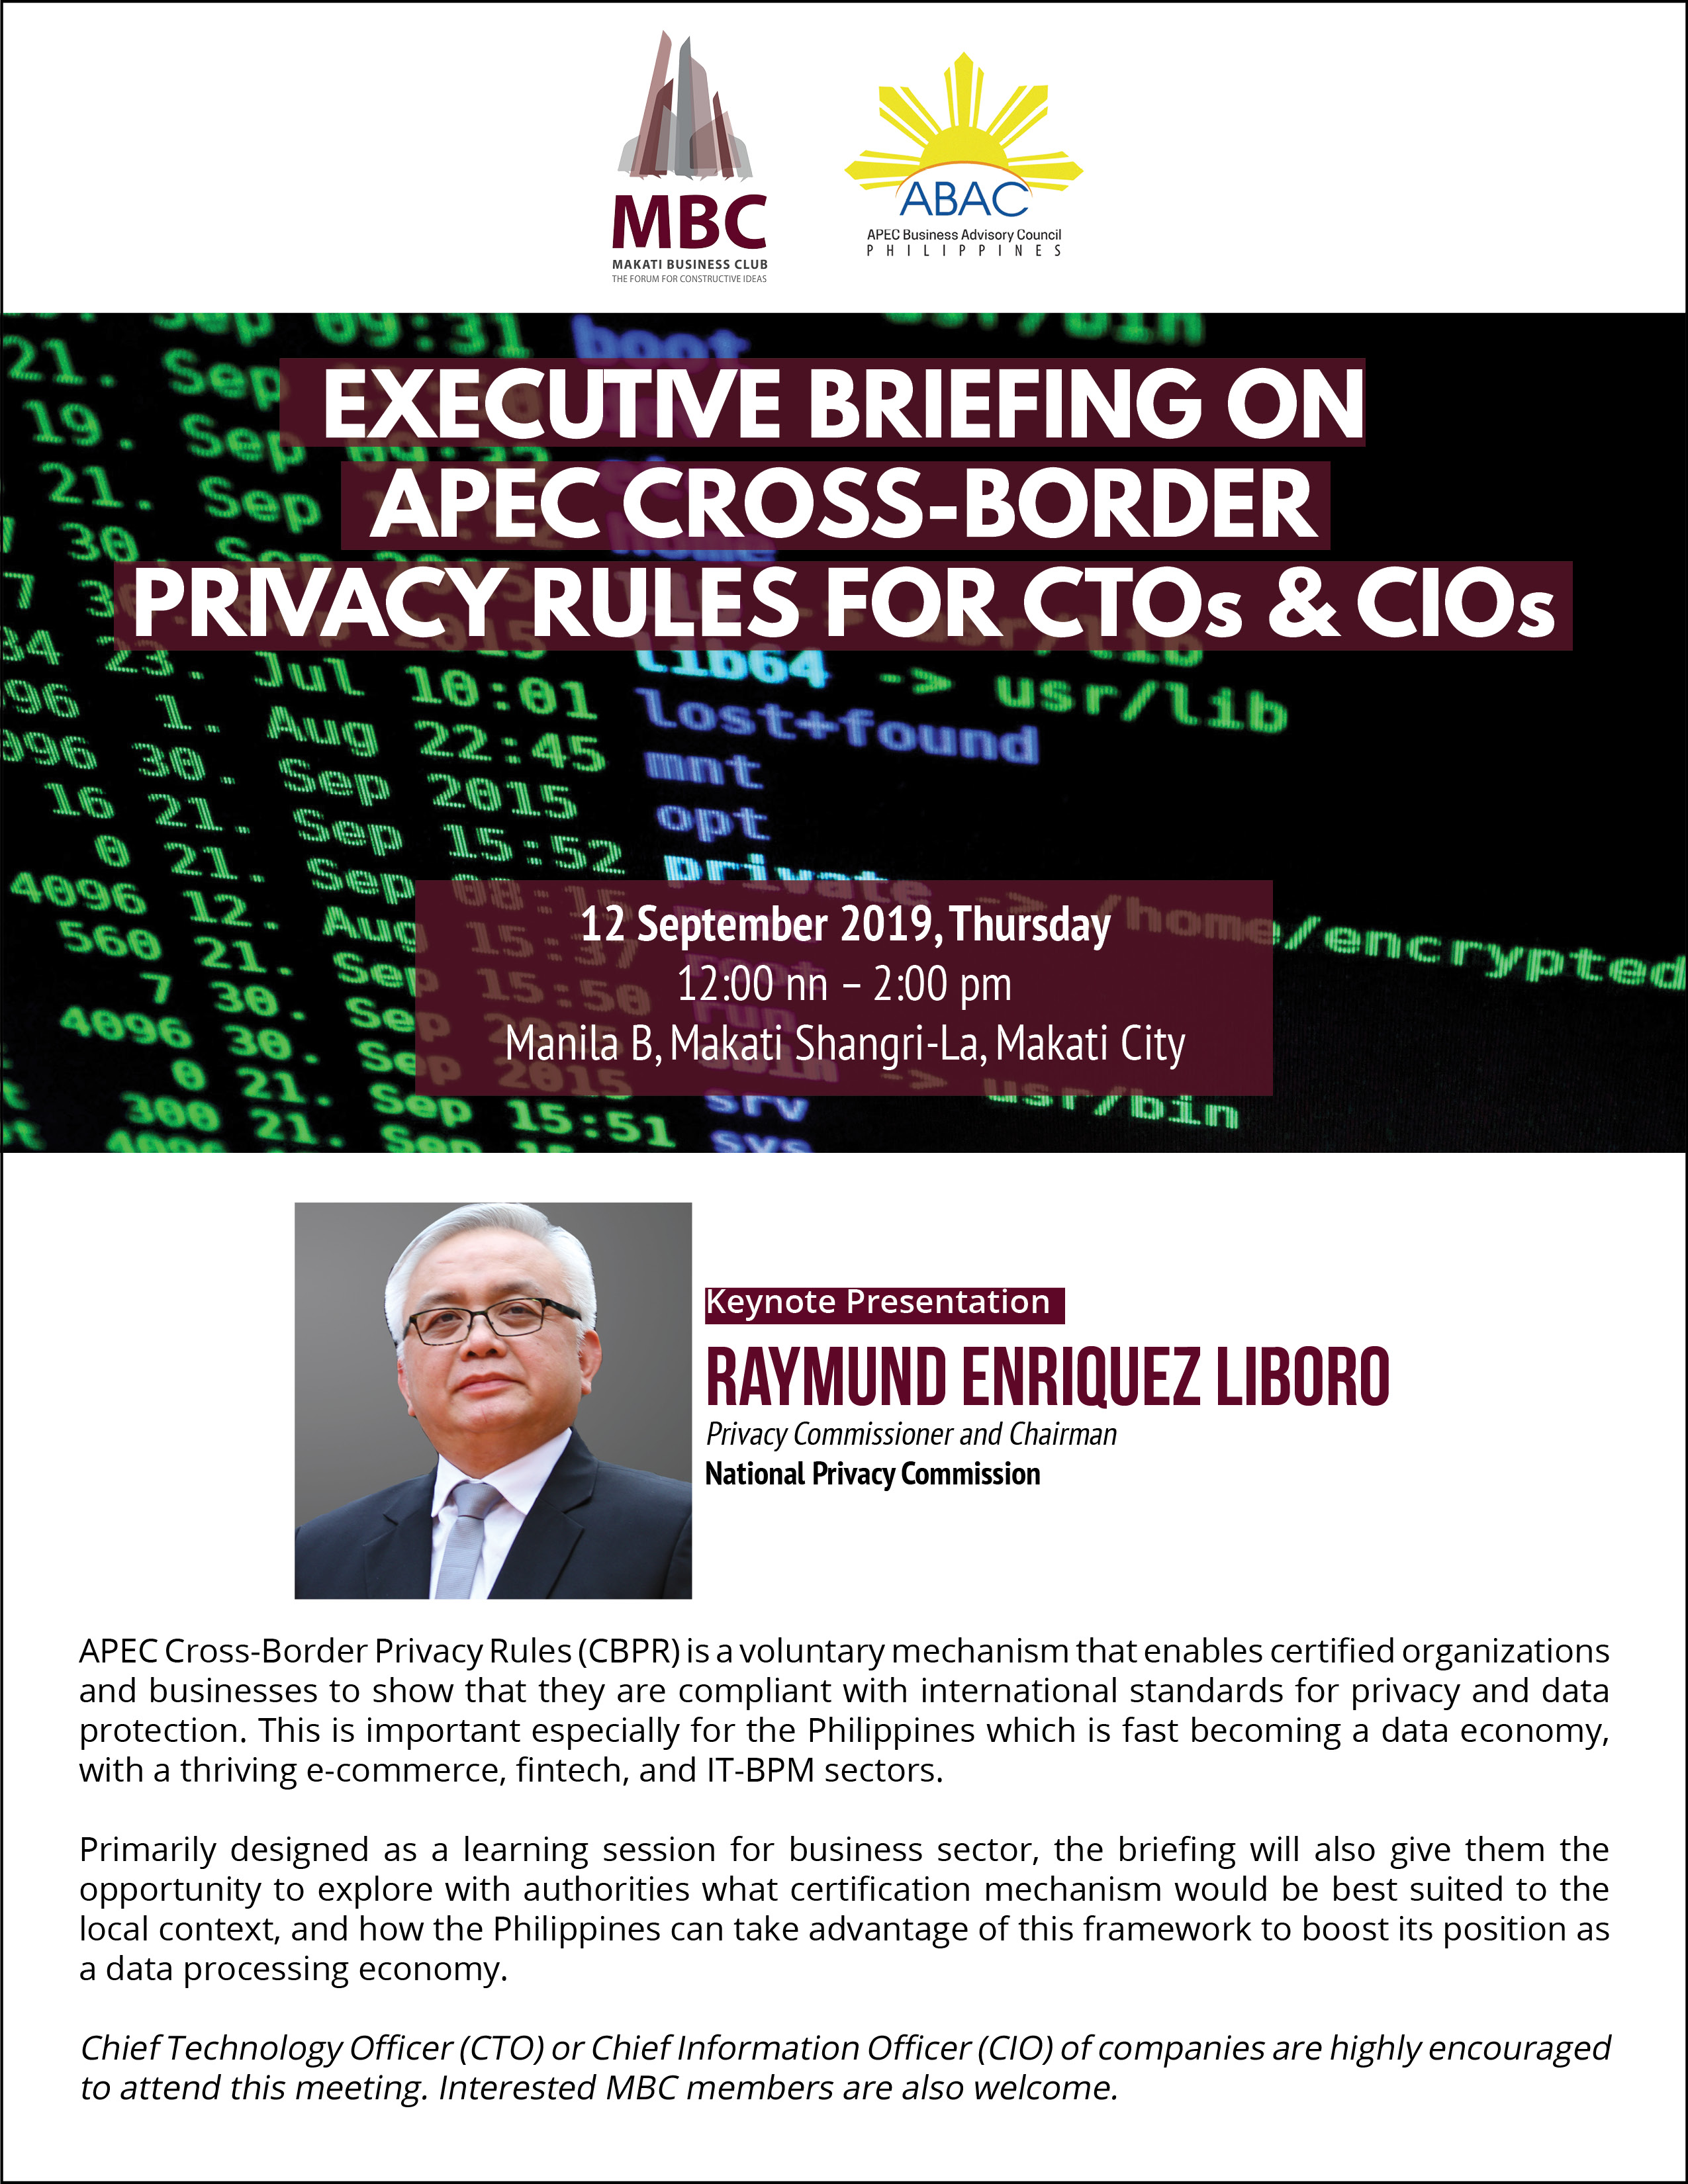 Executive Briefing on APEC Cross-Border Privacy Rules